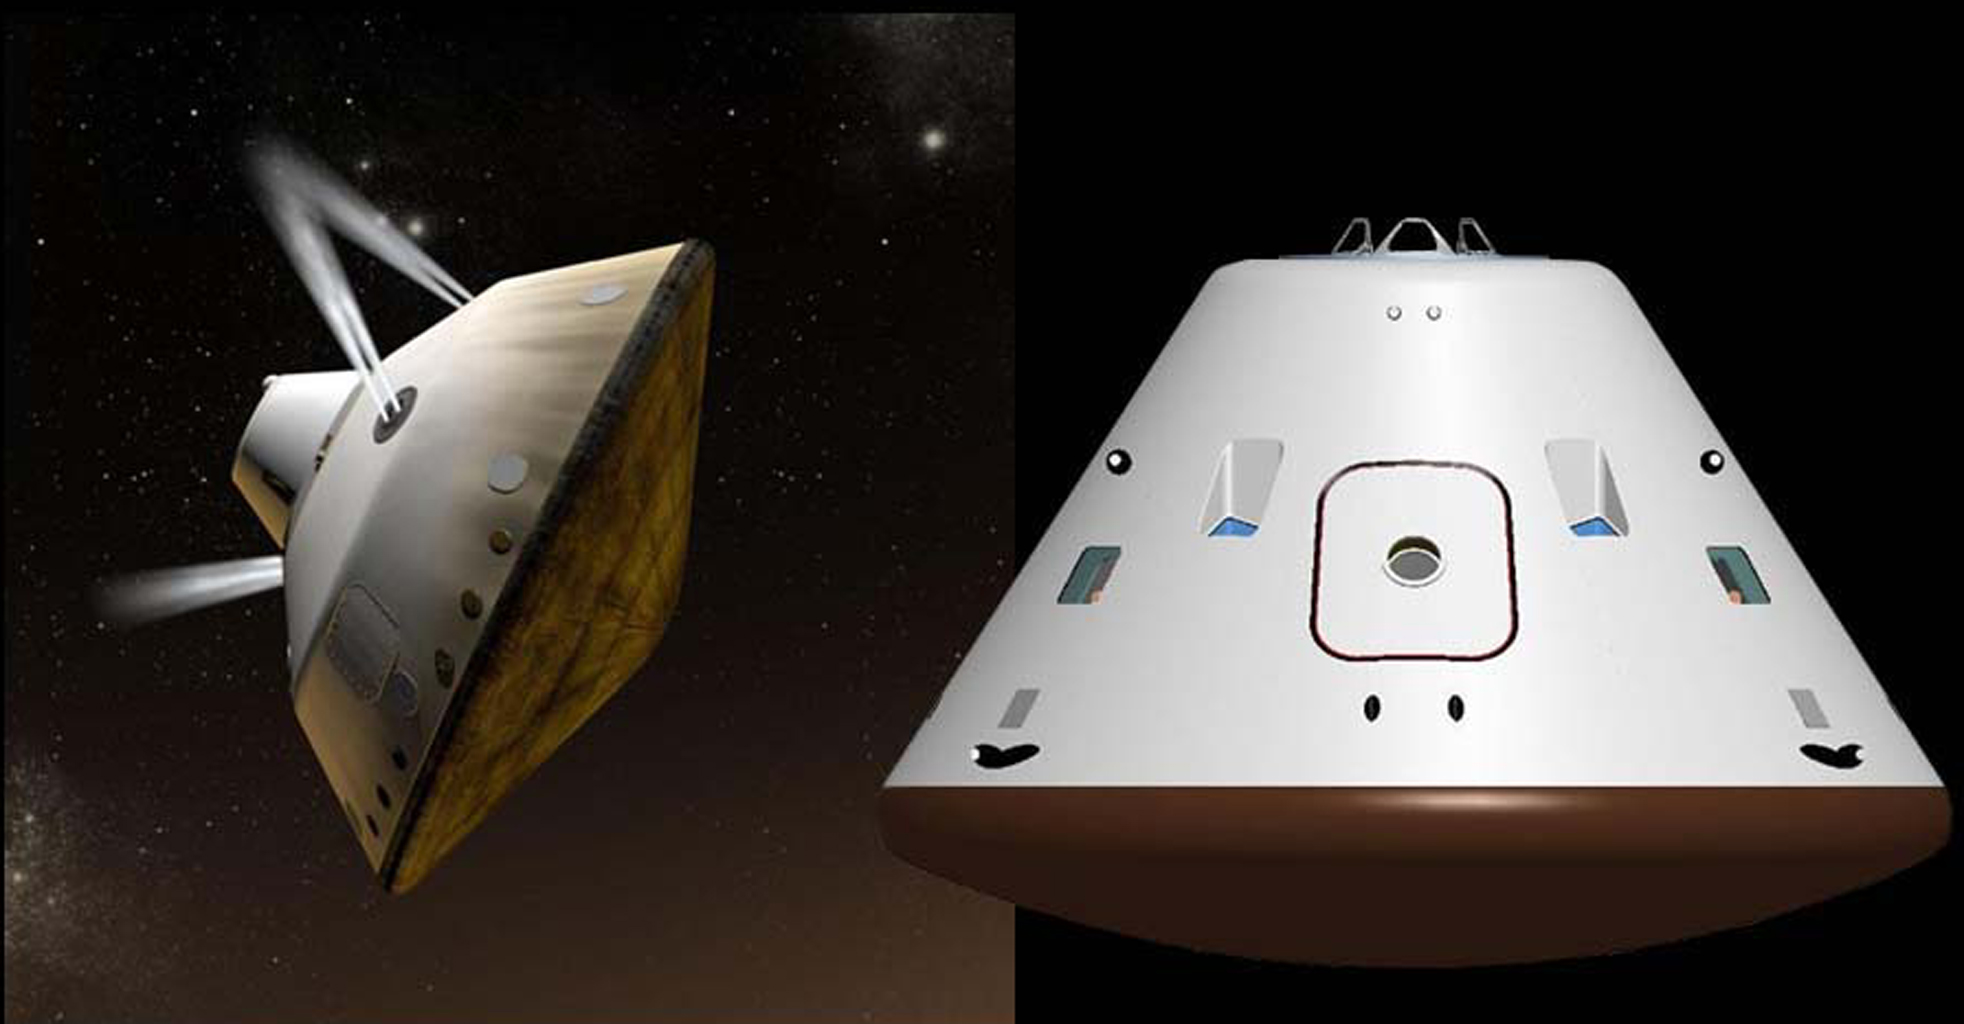 nasa spacecraft concept - photo #40